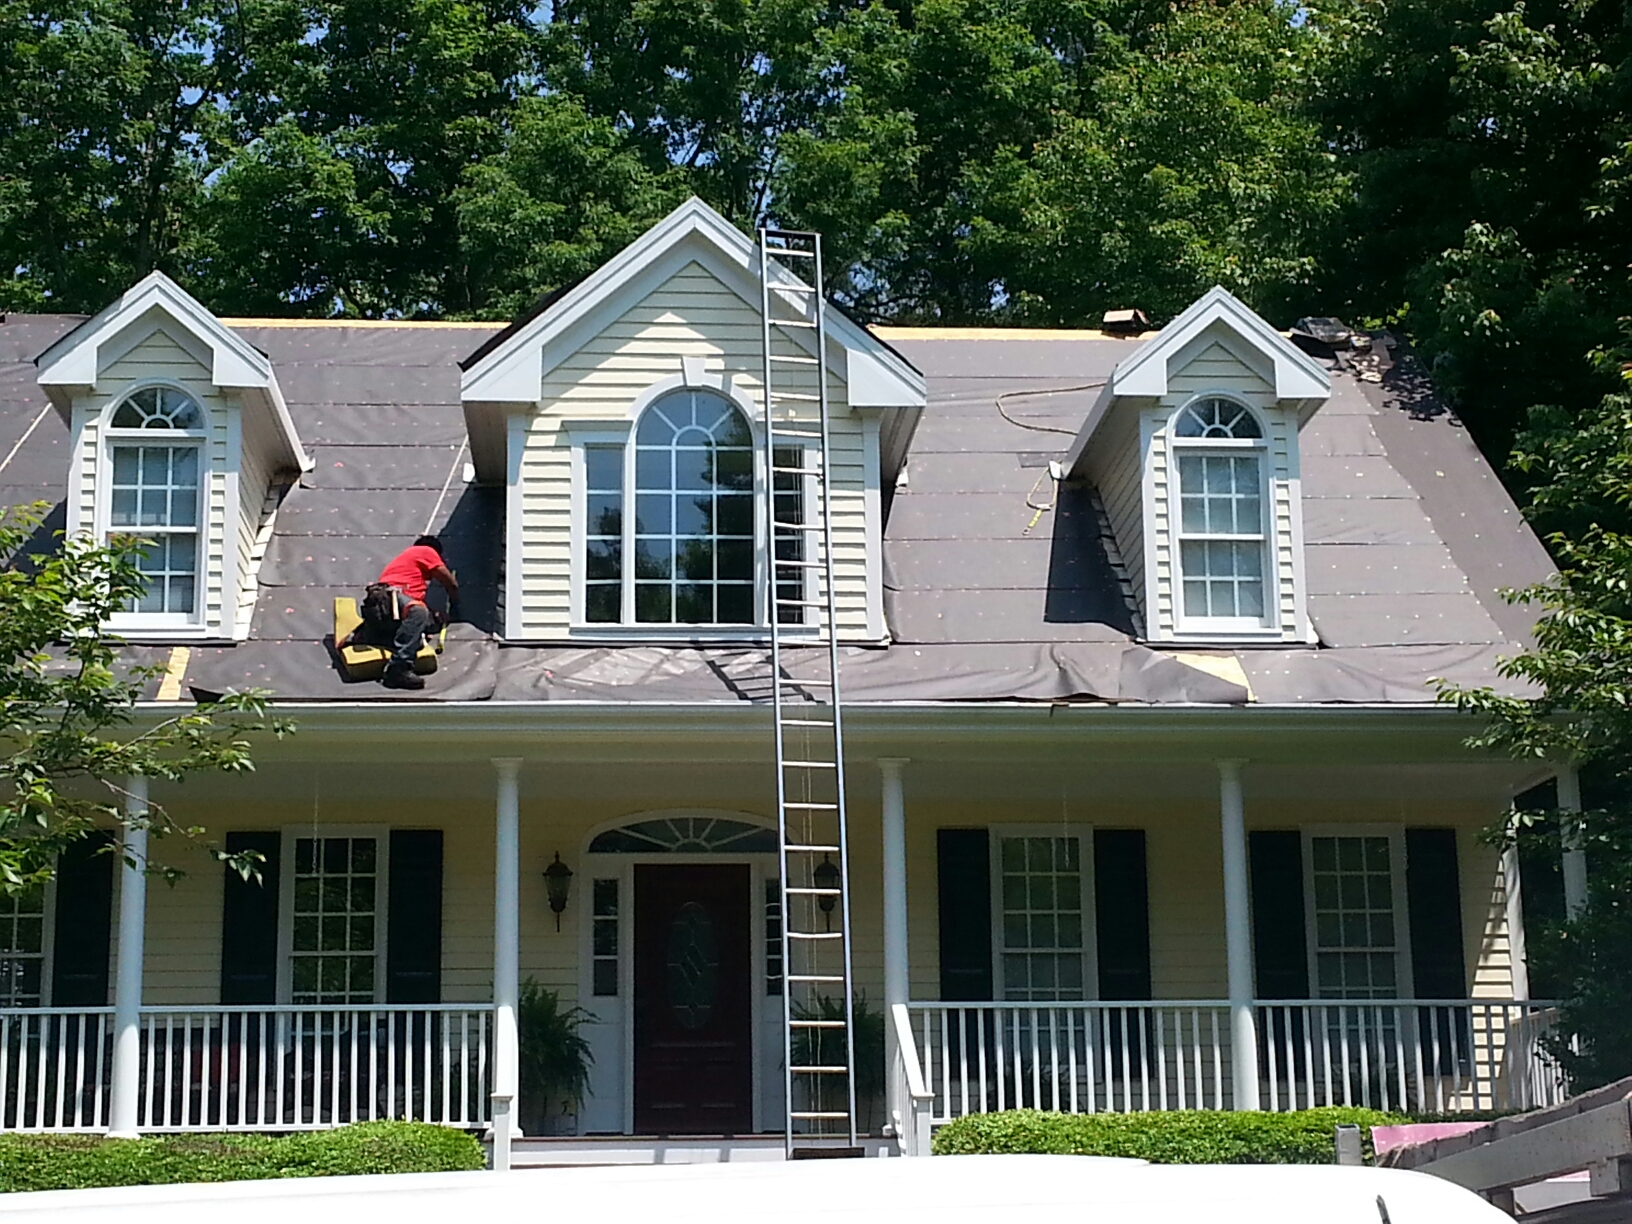 Cary, NC - Another roof by Spilman inc of Raleigh, NC.....but in Cary!